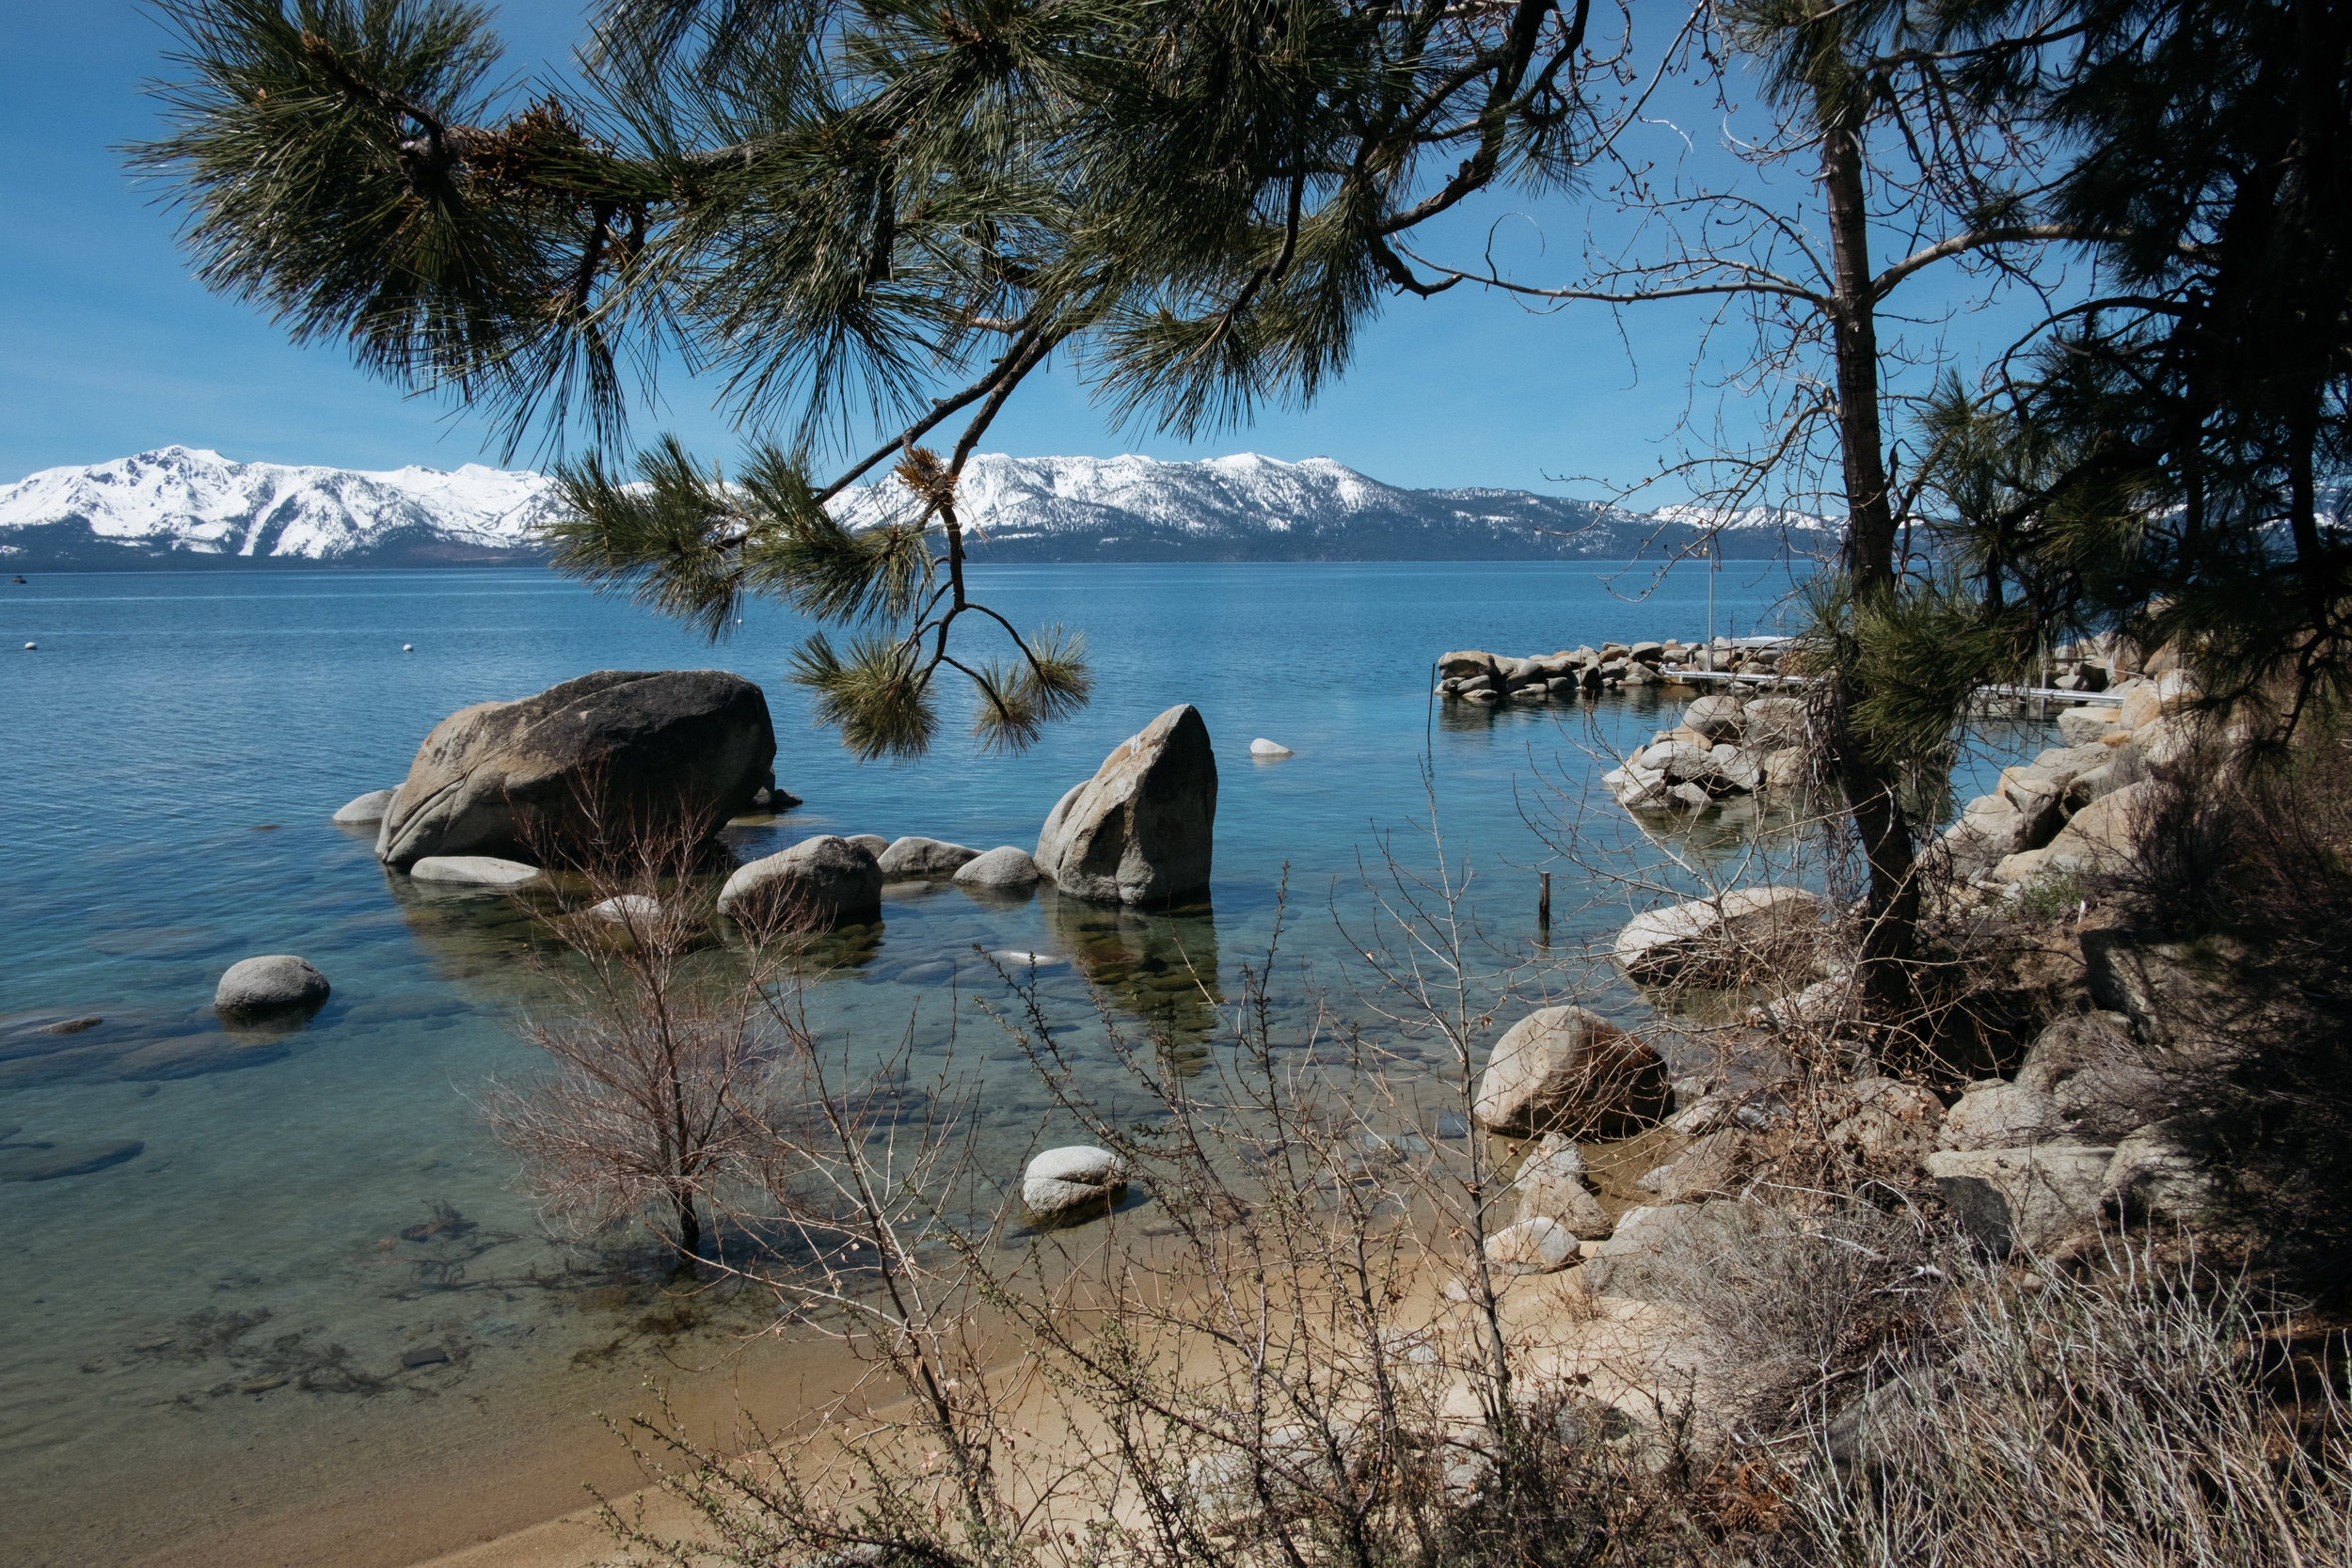 Lake Tahoe shoreline and mountains